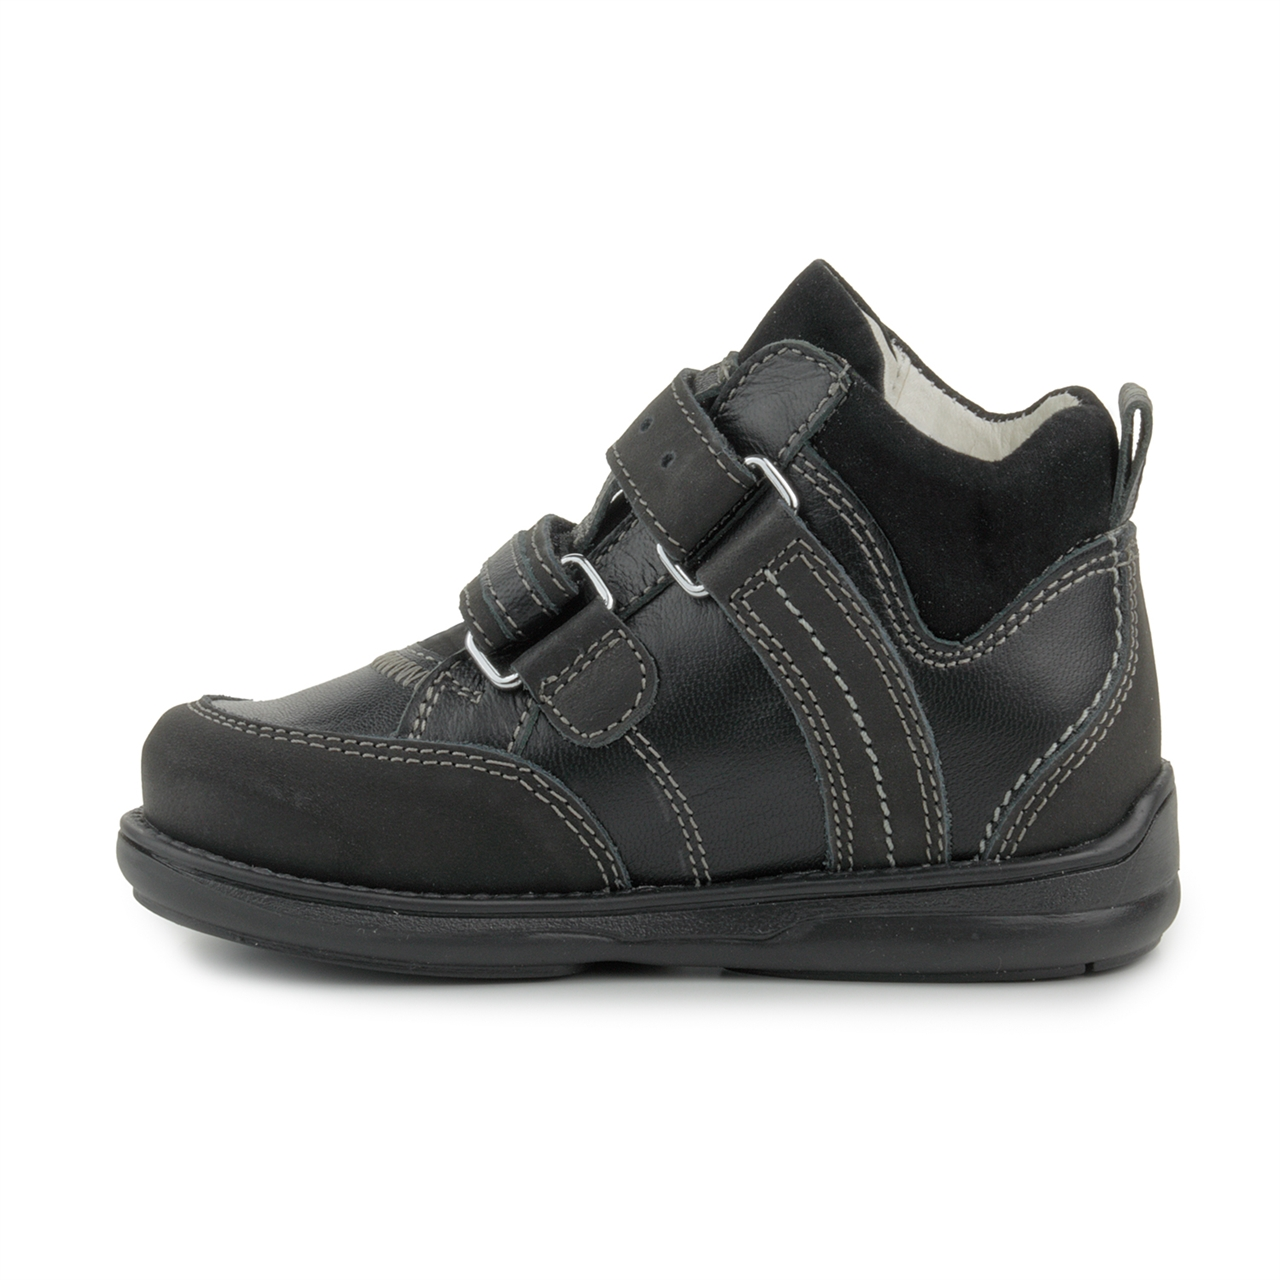 All Black Velcro Toddler Shoes